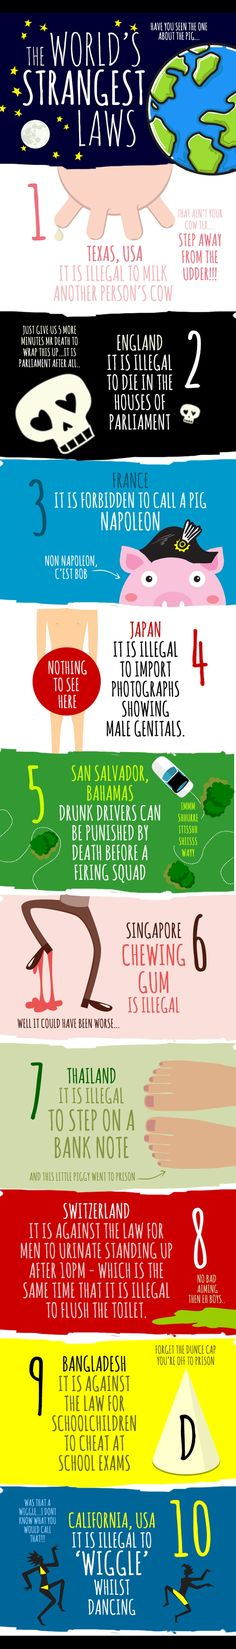 INFOGRAPHIC: The World's Strangest Laws